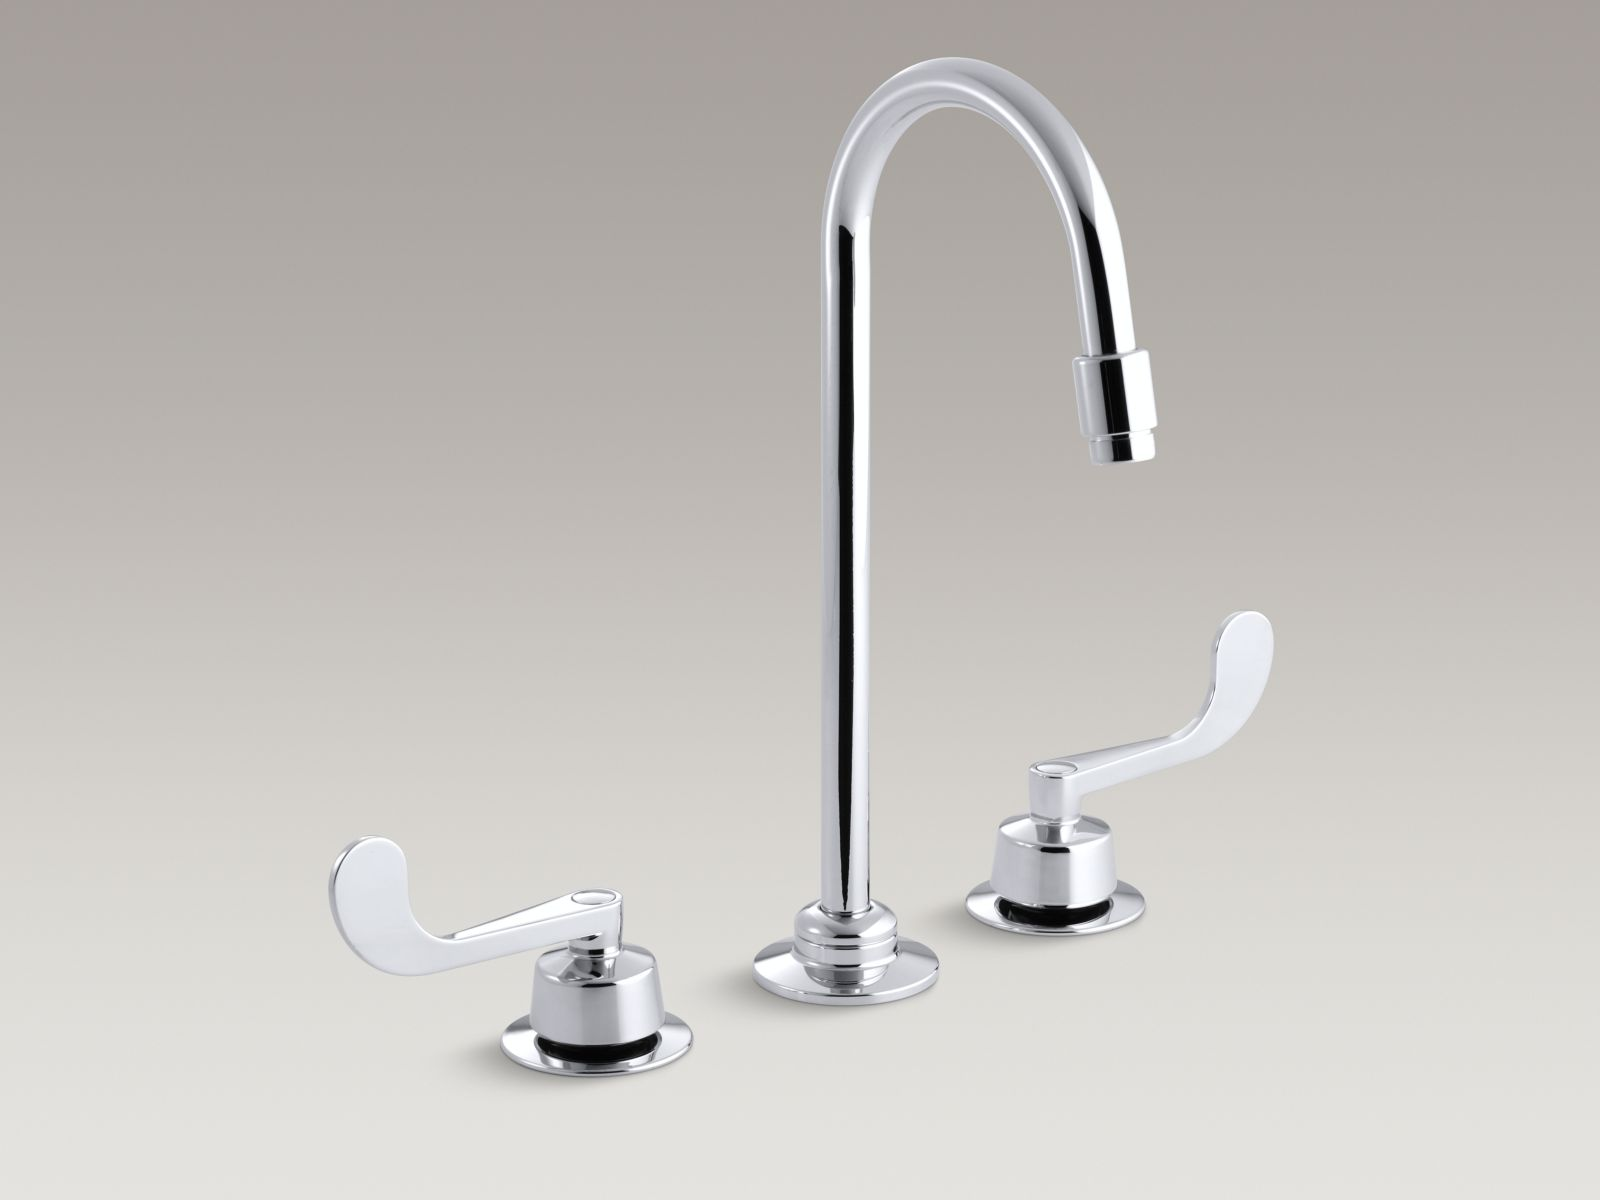 Kohler K 7304 5A CP Triton Widespread Commercial Bathroom Faucet With  Flexible Connections